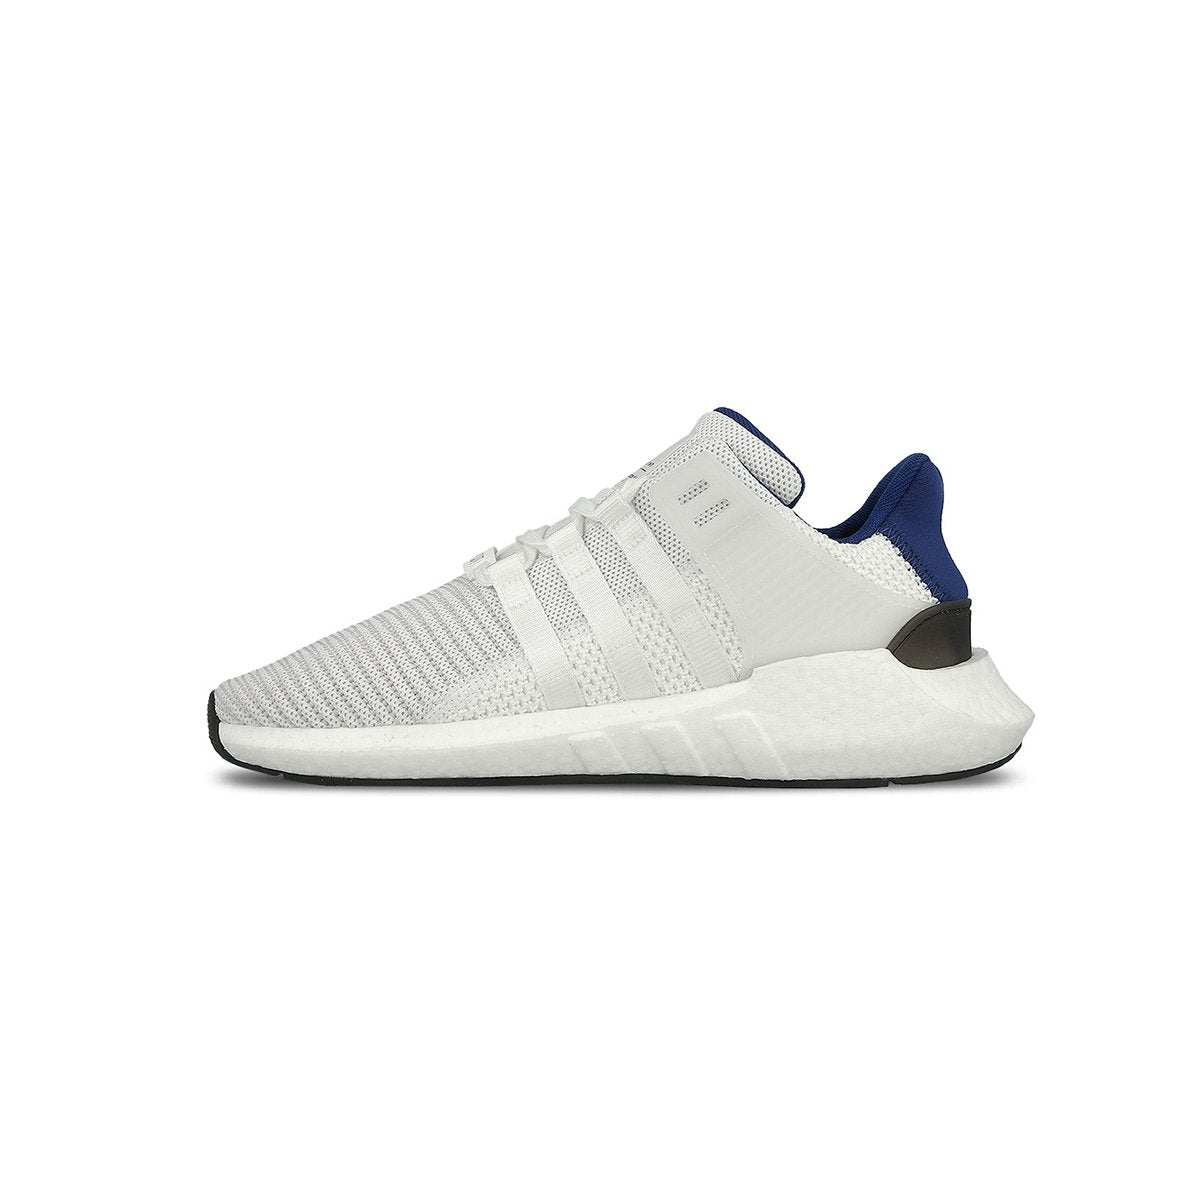 low priced 8eca8 2f72a ConceptsIntl | Adidas EQT Support 93/17 (White/White-Royal)